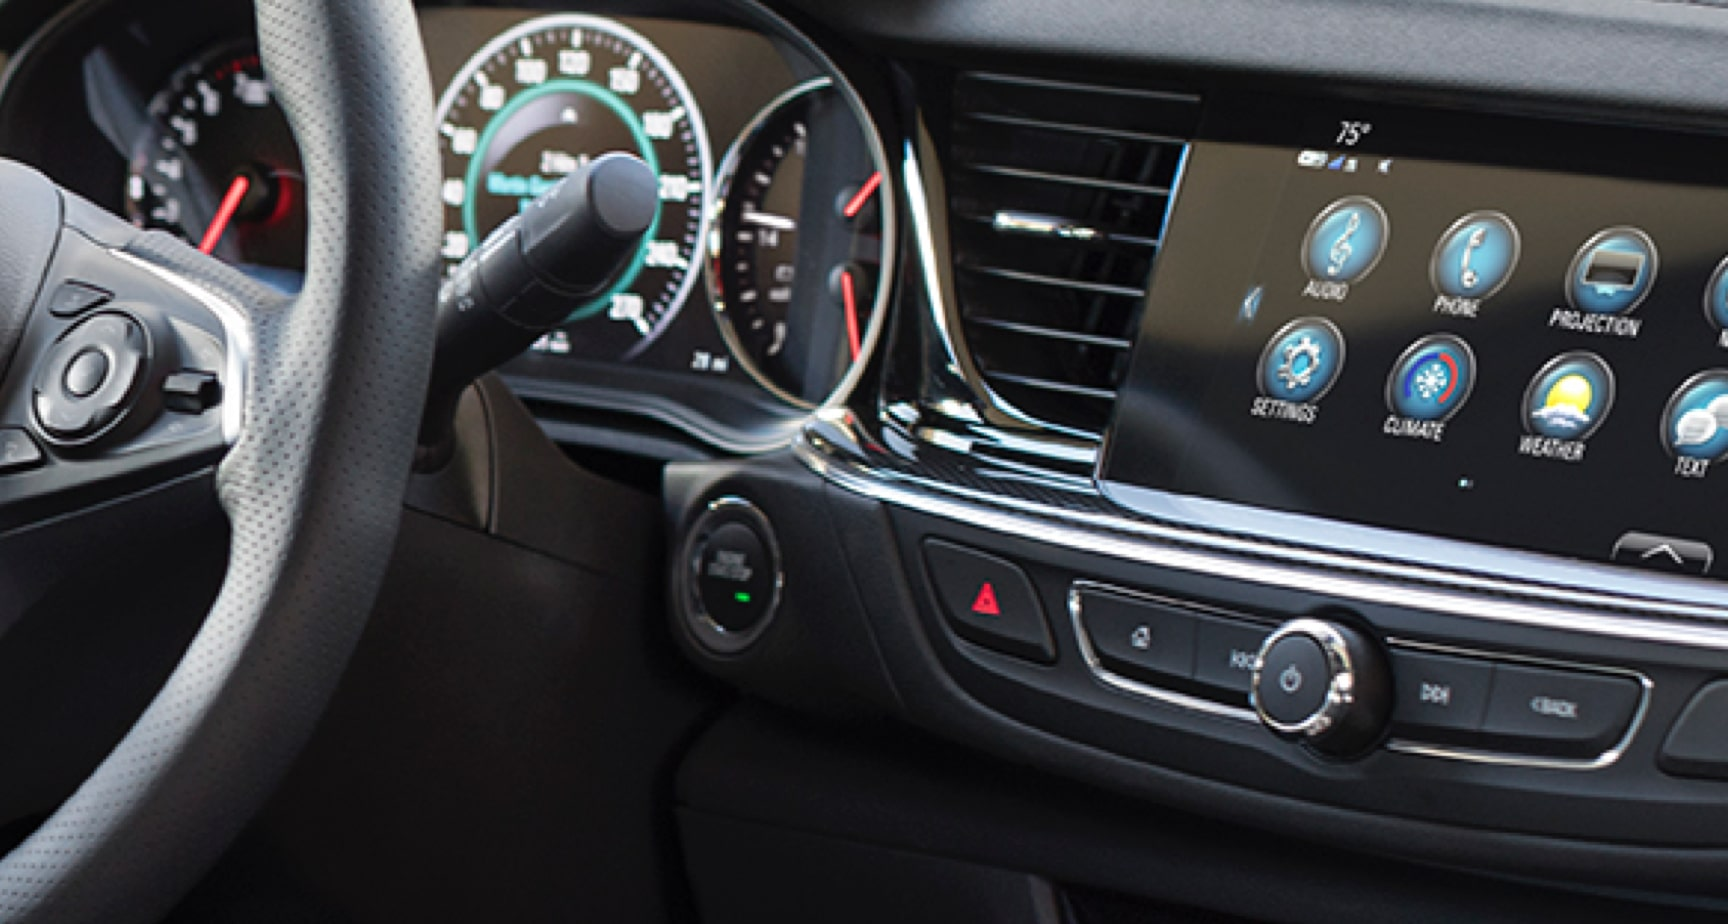 Buick Regal: Using the Re-dial Command